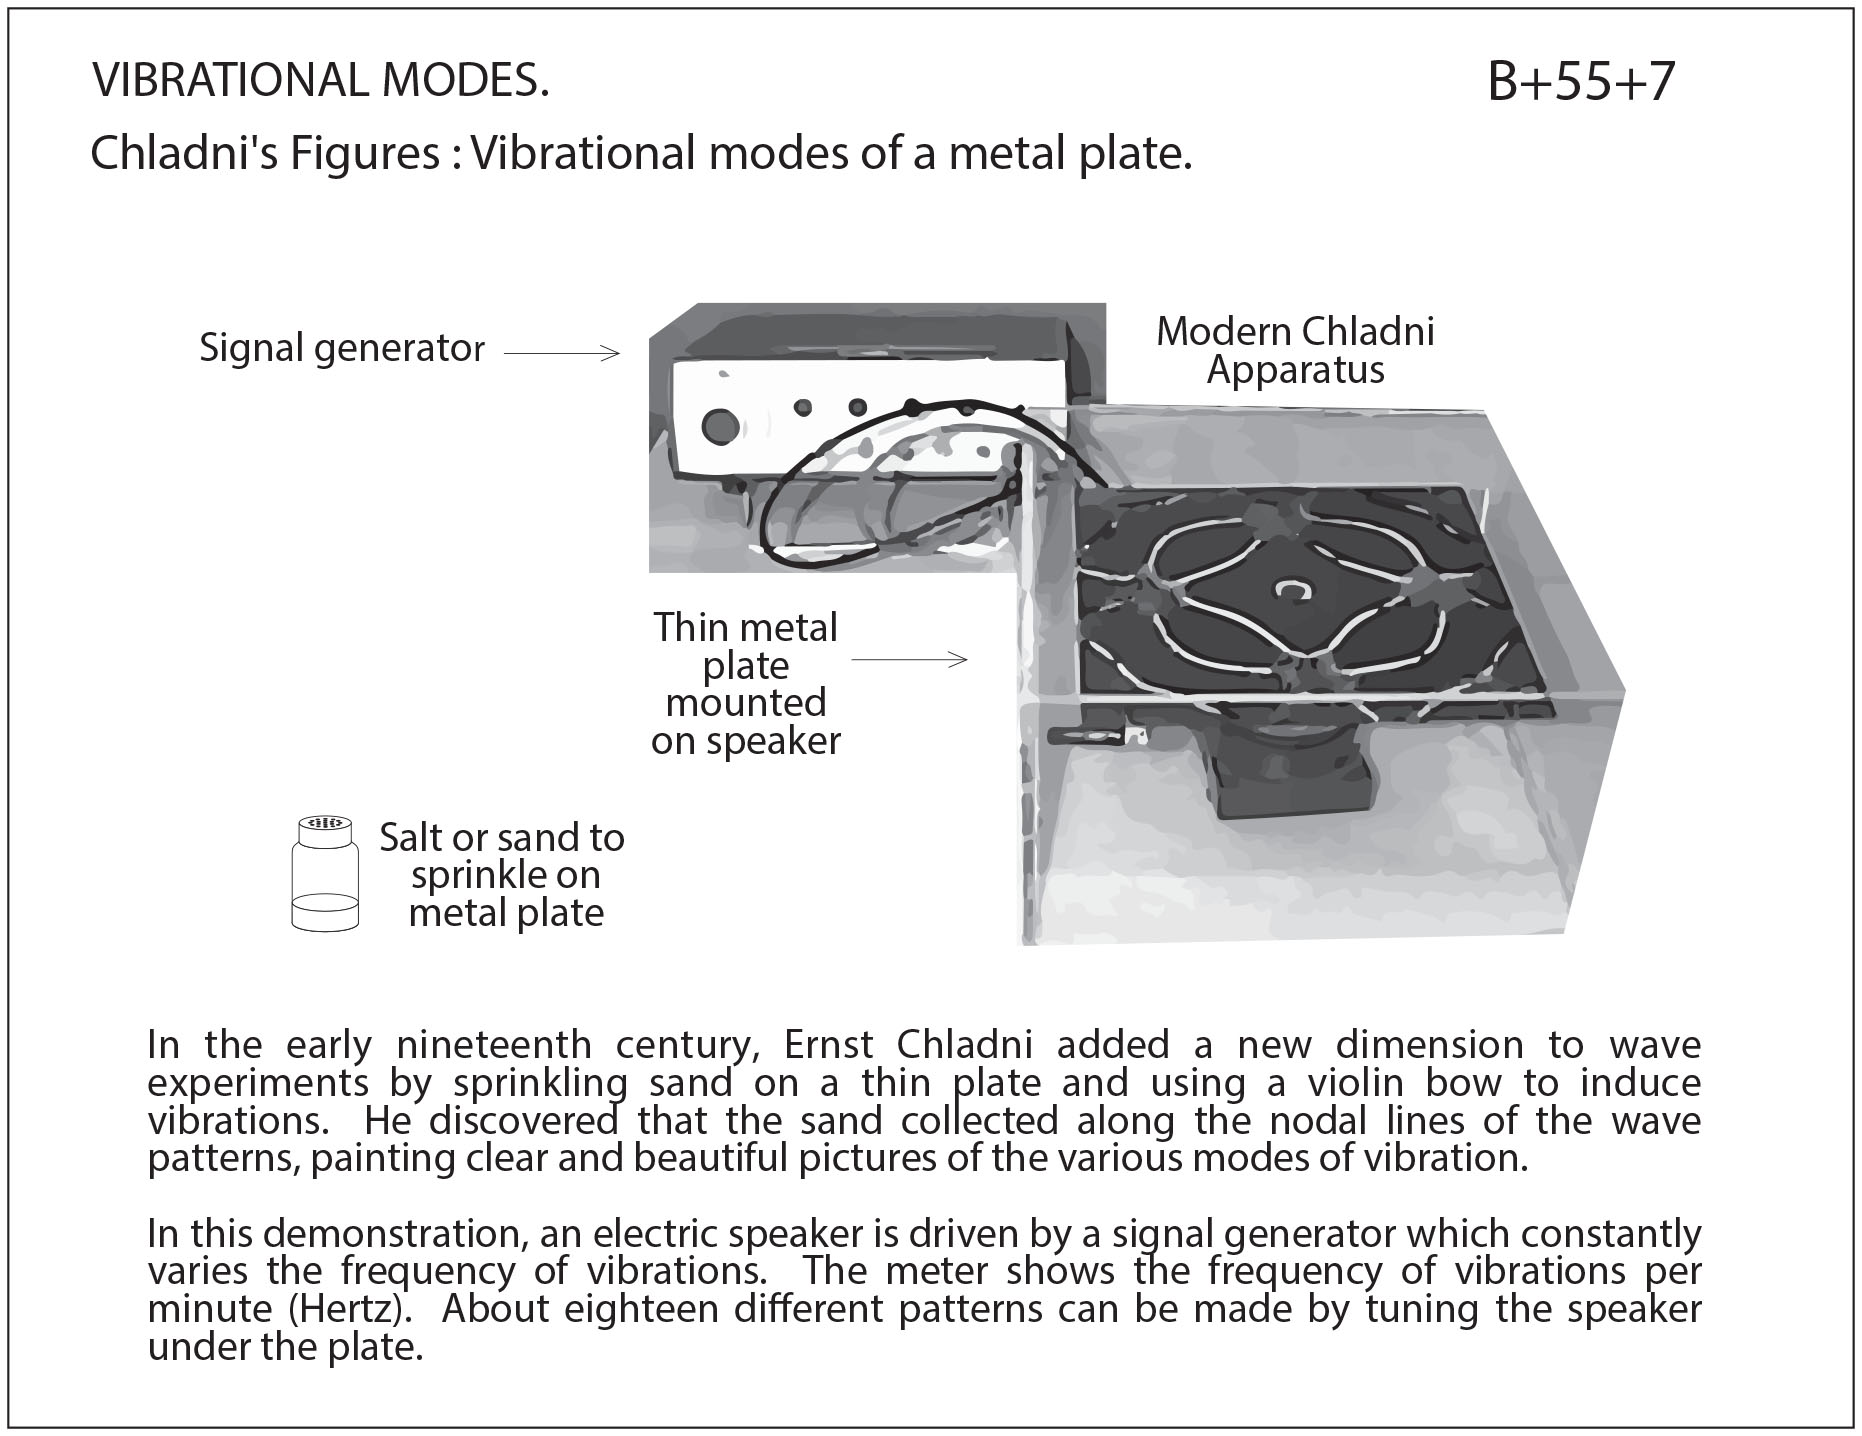 Chladni's Figures: Vibrational modes of a metal plate | Lecture